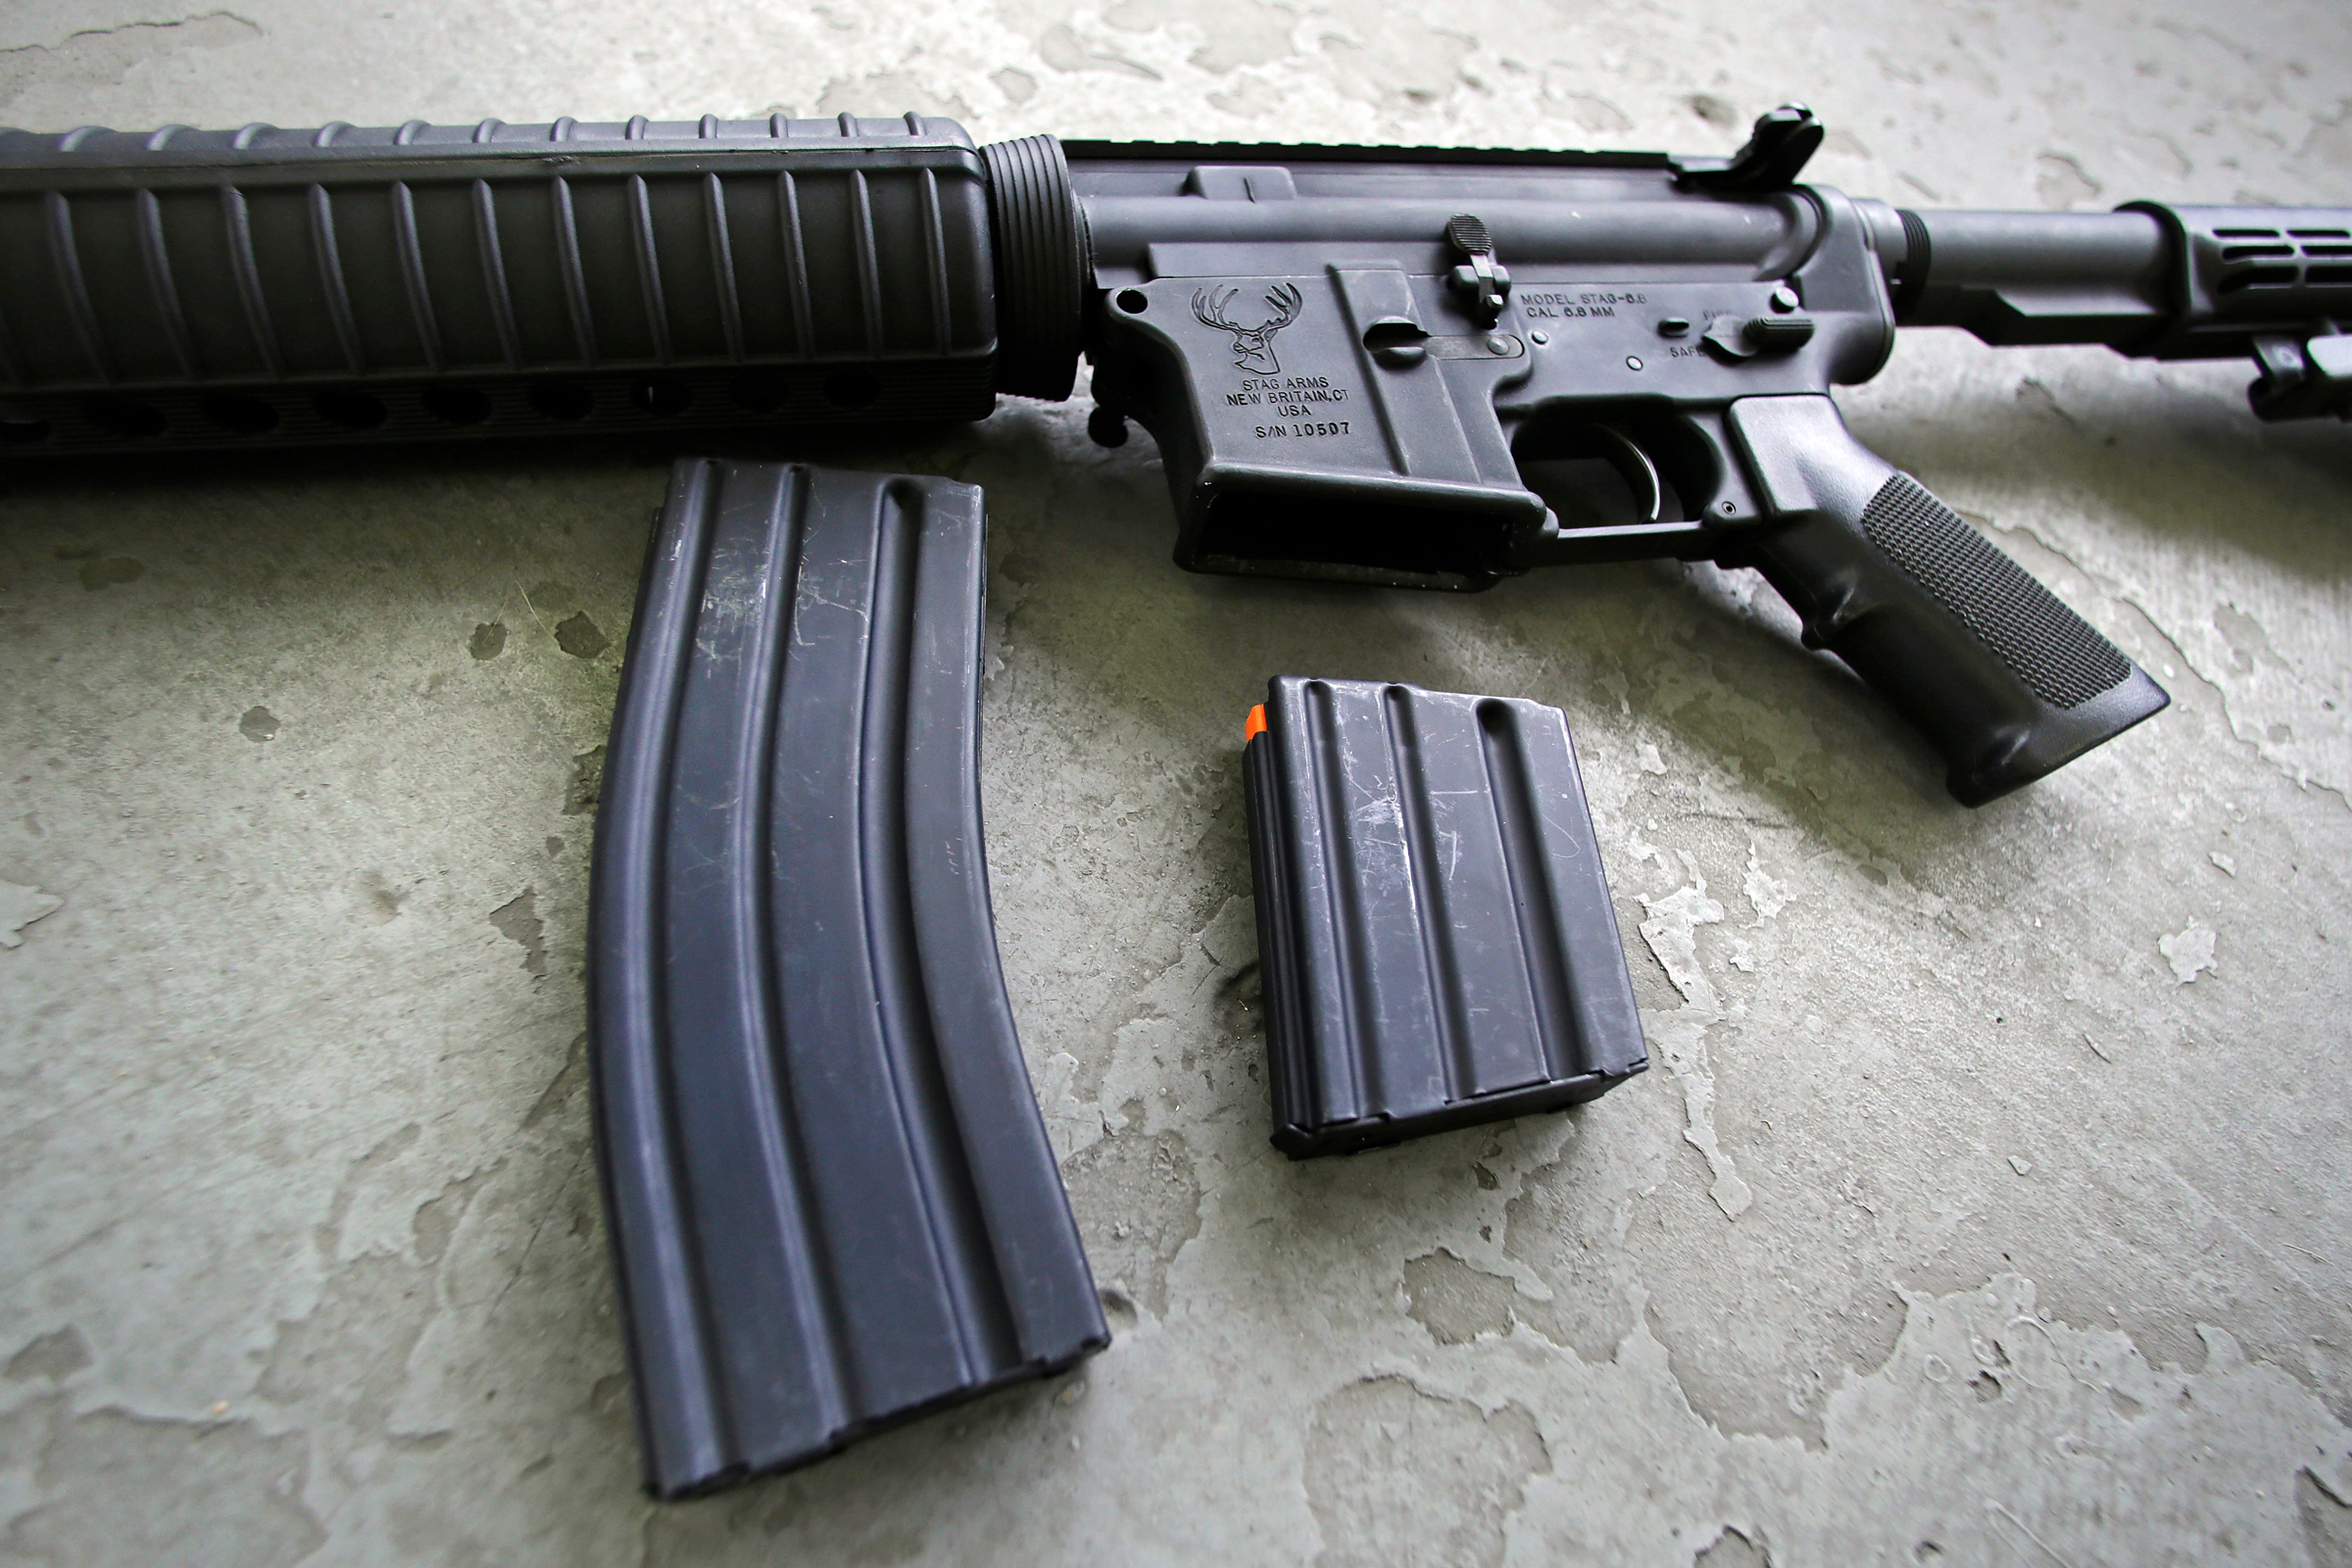 What the 'Unconstitutional' High-Capacity Magazine Ban Could